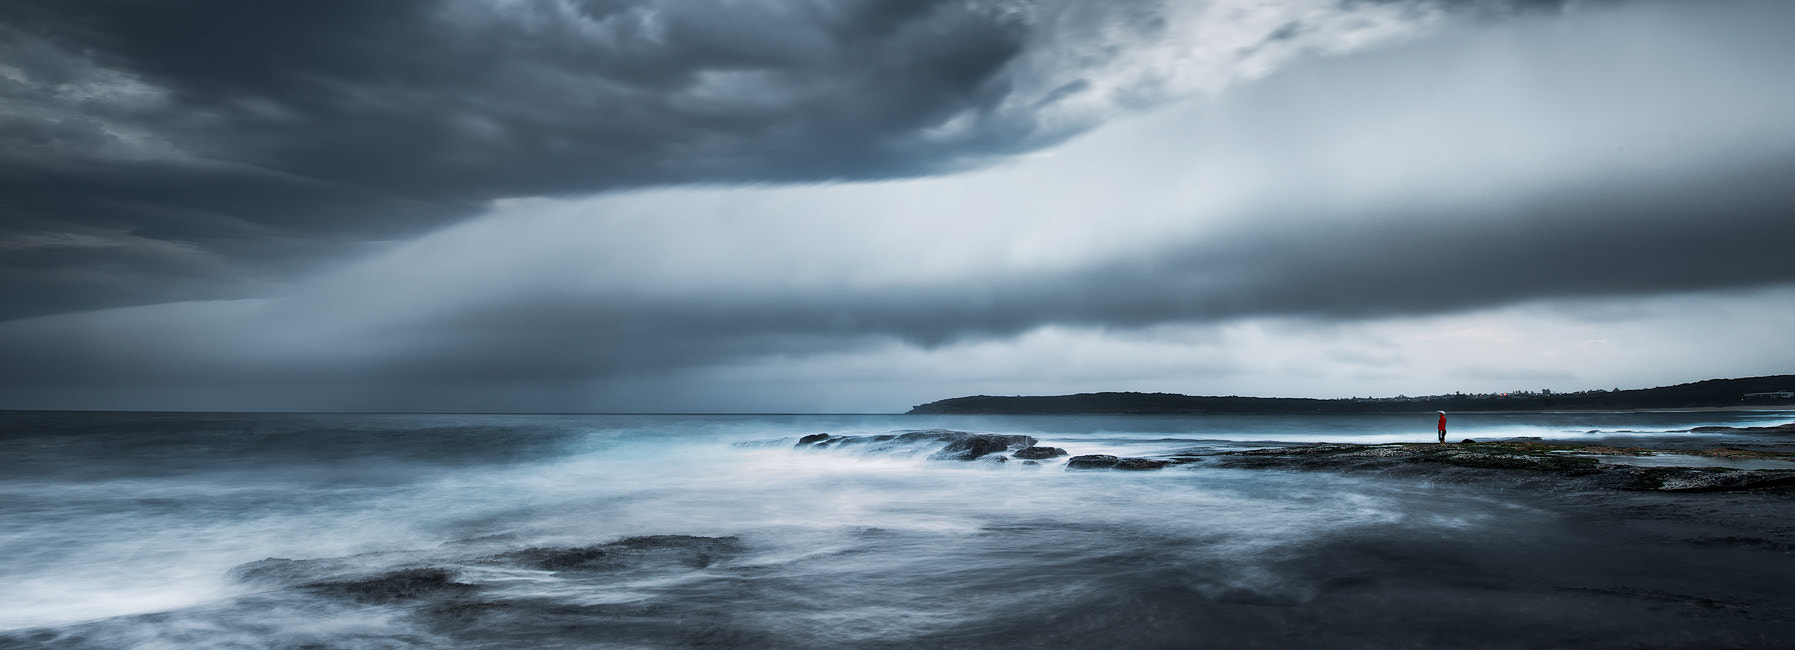 Photograph Before the Storm by Joshua Zhang on 500px